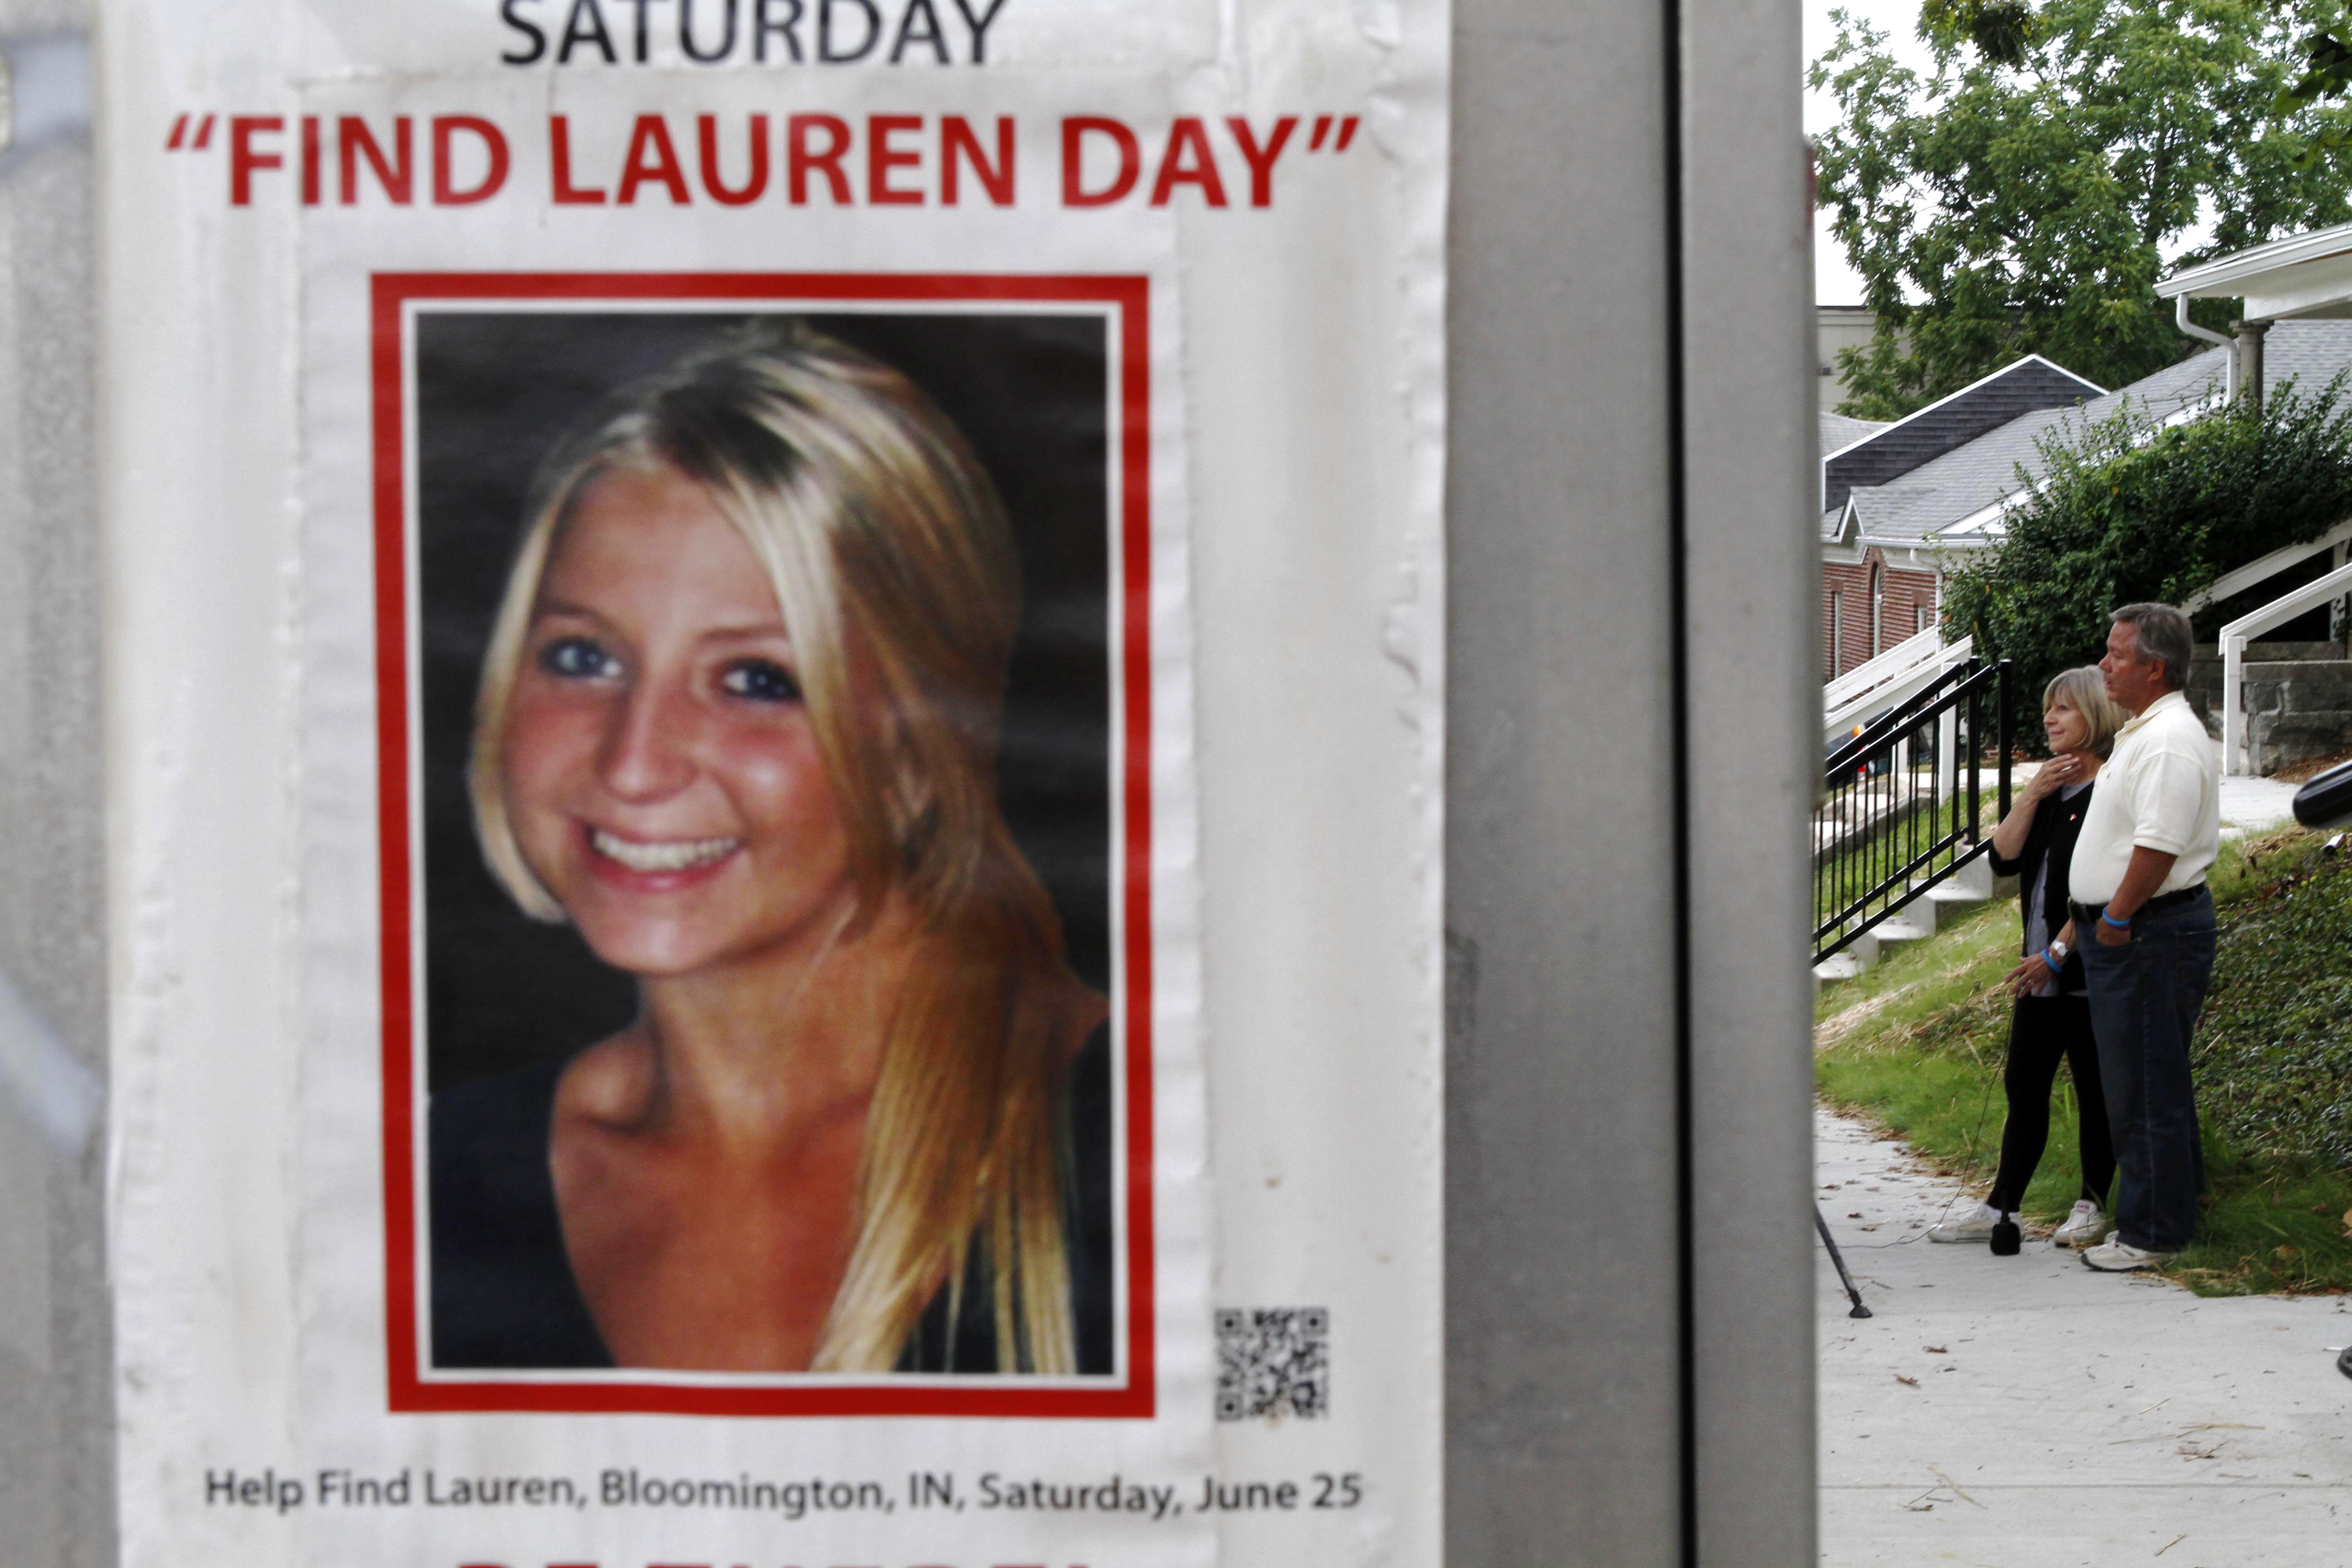 Charlene and Robert Spierer speak to reporters near a poster alerting people to their missing daughter, Lauren, in Bloomington, Ind. on Aug. 15, 2011